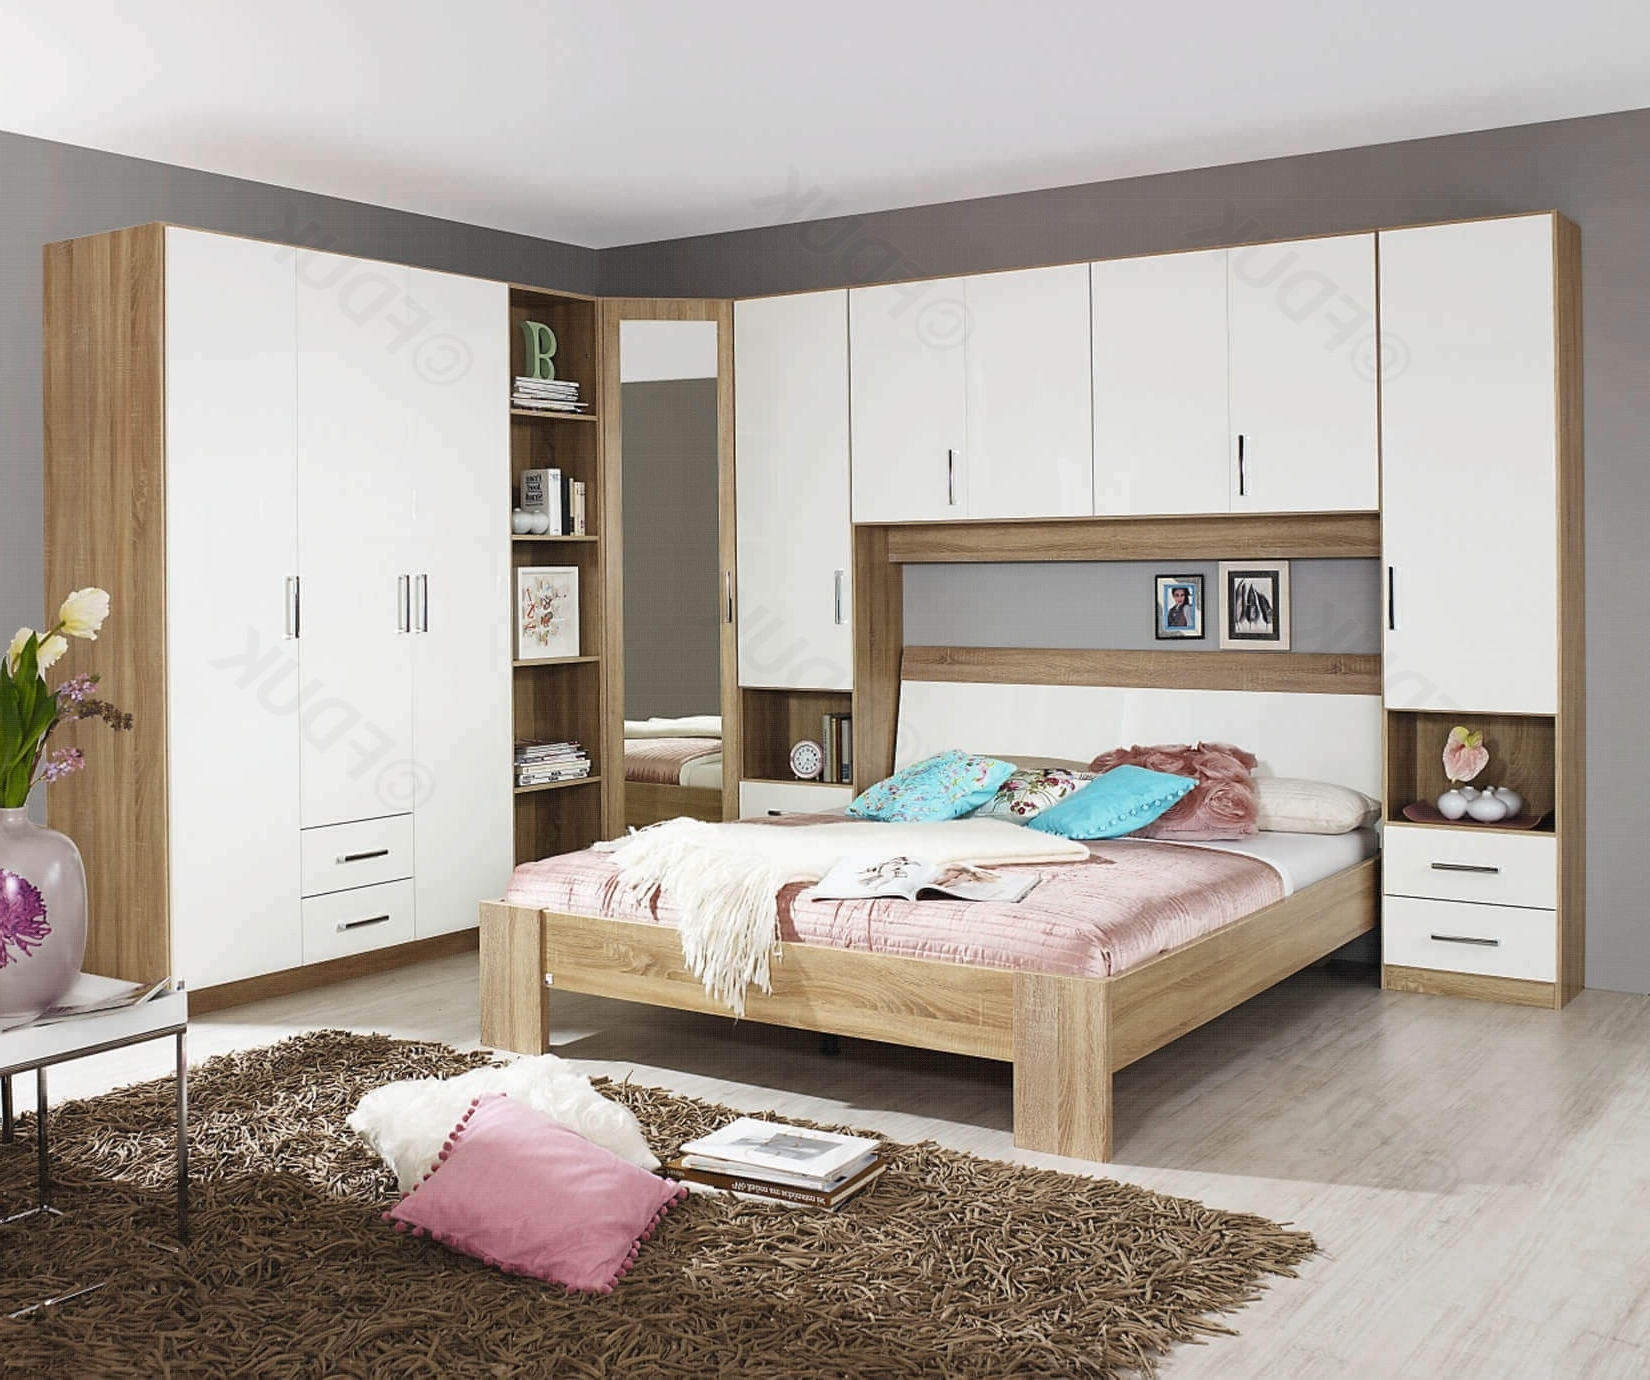 2018 Overbed Wardrobes Pertaining To Rauch Furniture (View 2 of 15)